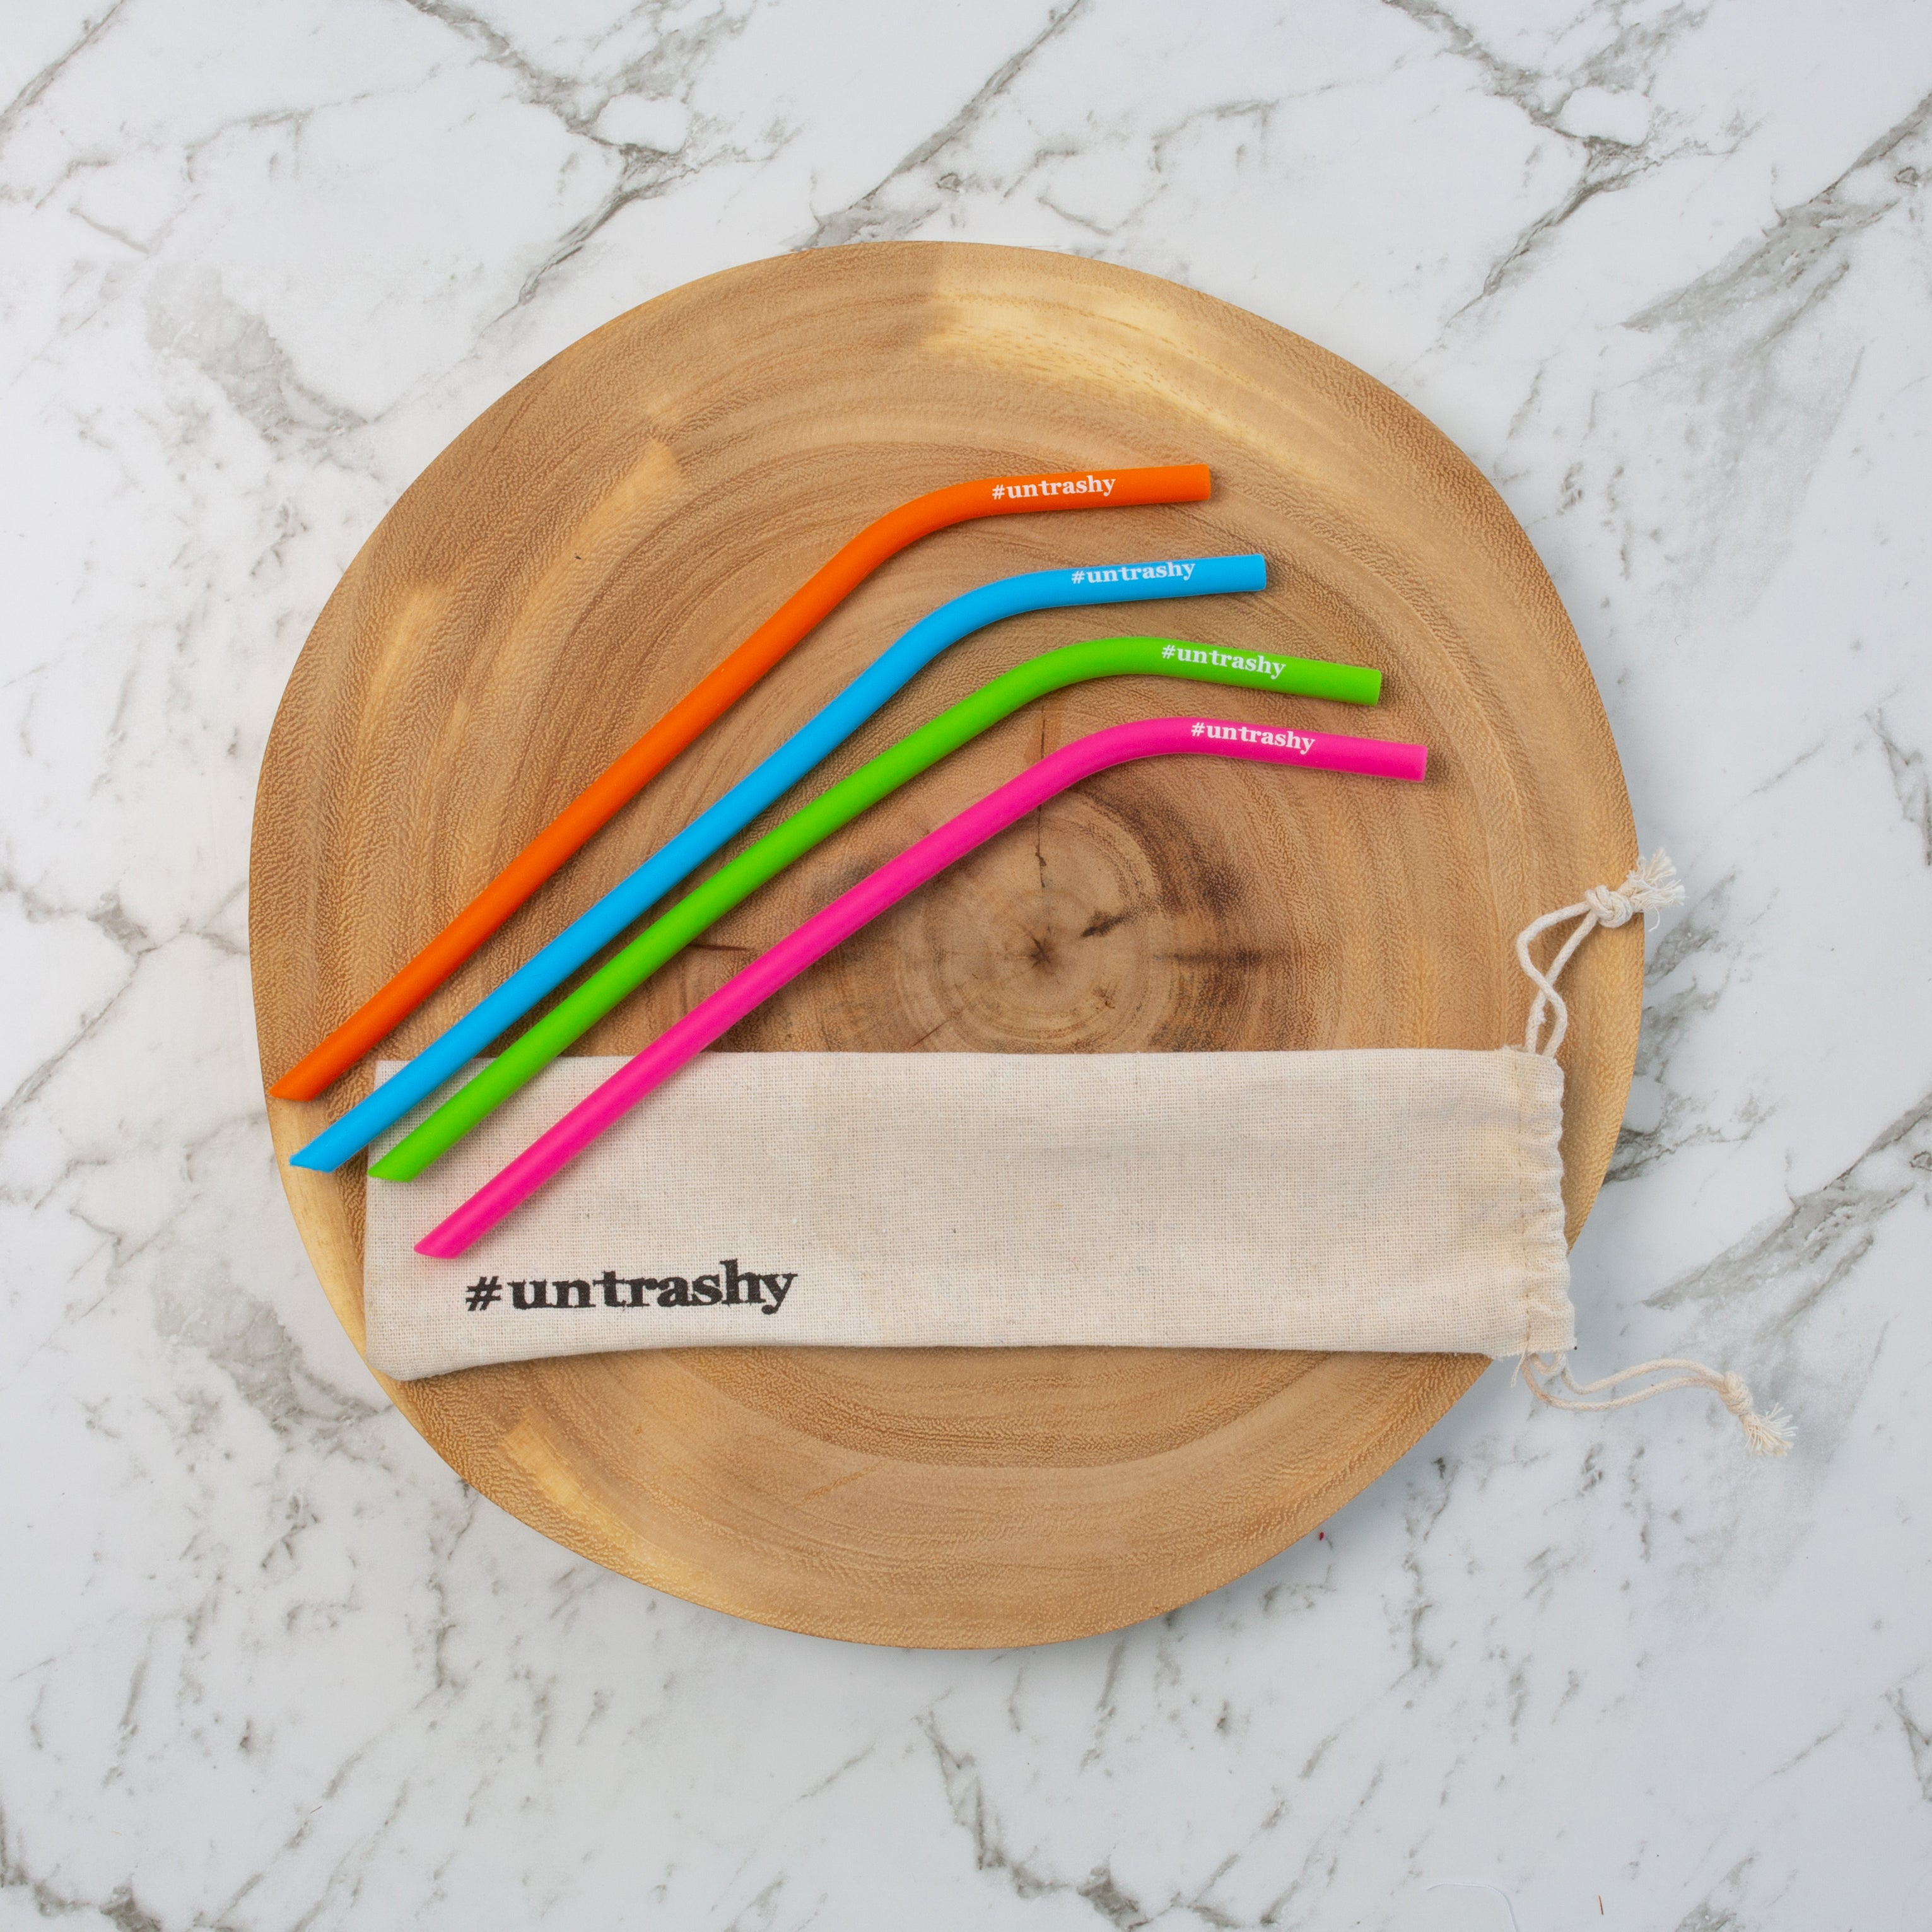 colourful silicone straws with a straw bag on a wooden board